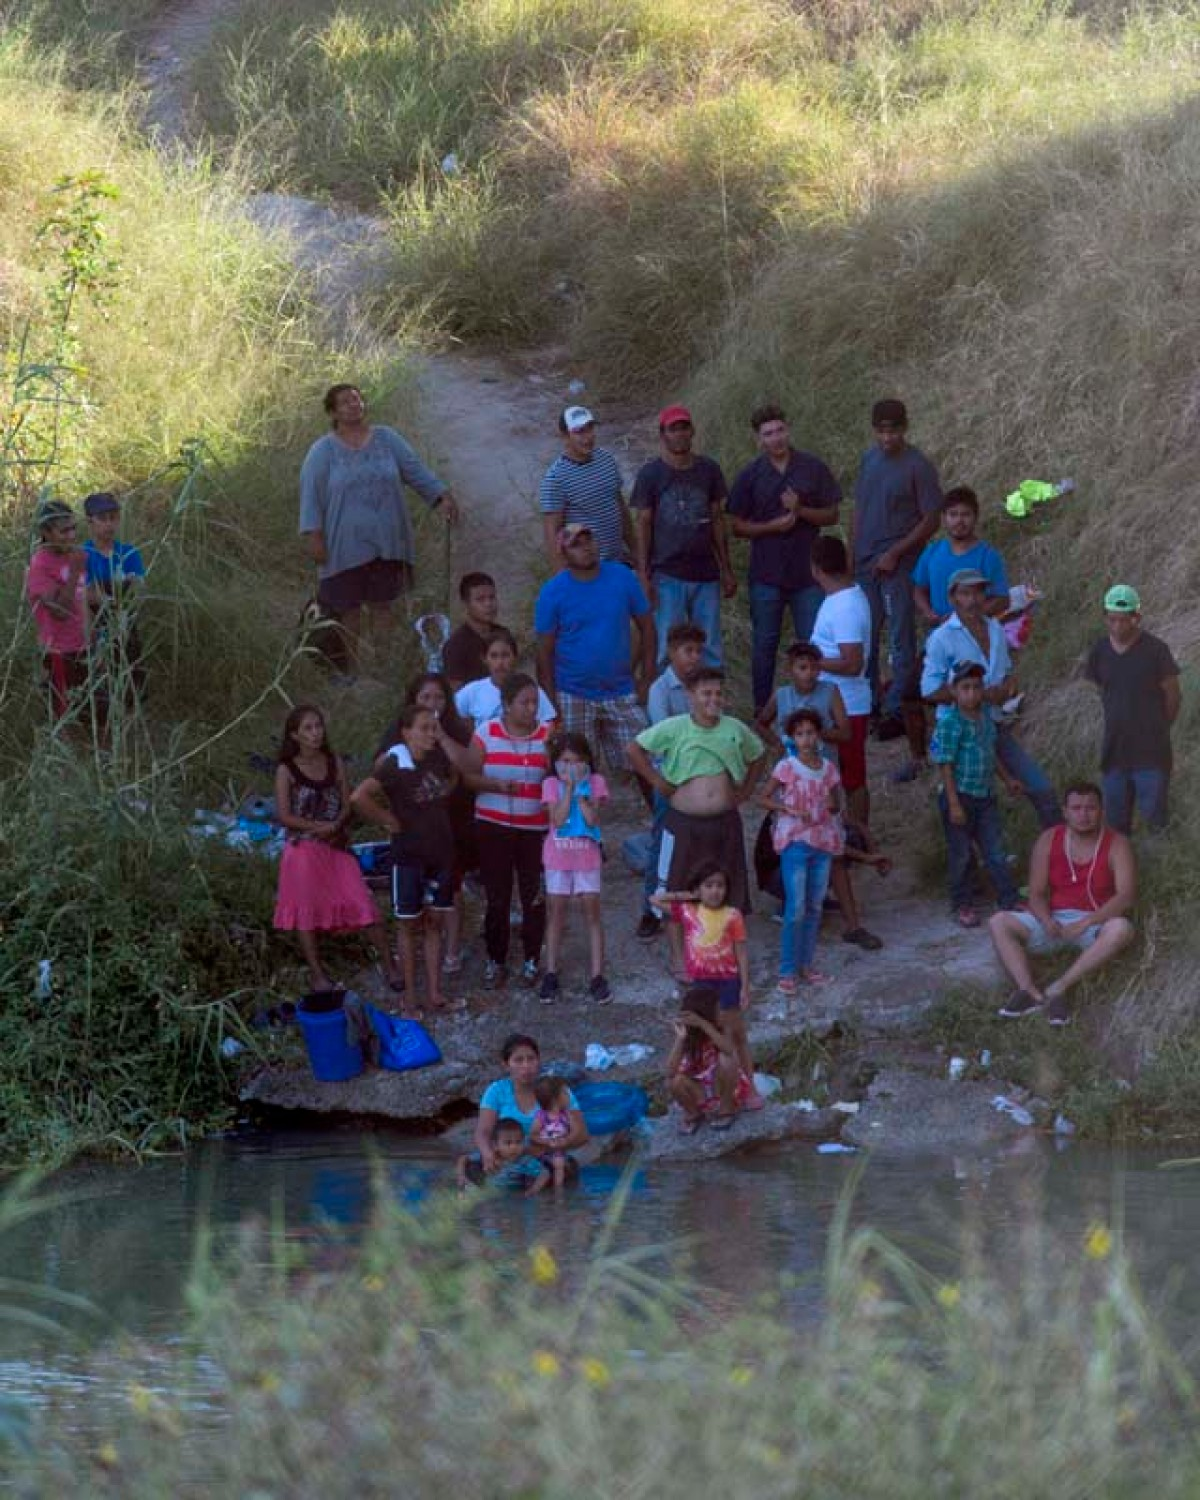 Migrants sit by the Rio Grande and look up to the bridge that connects Matamoros, Mexico and Brownsville, Texas. Paul Goyette